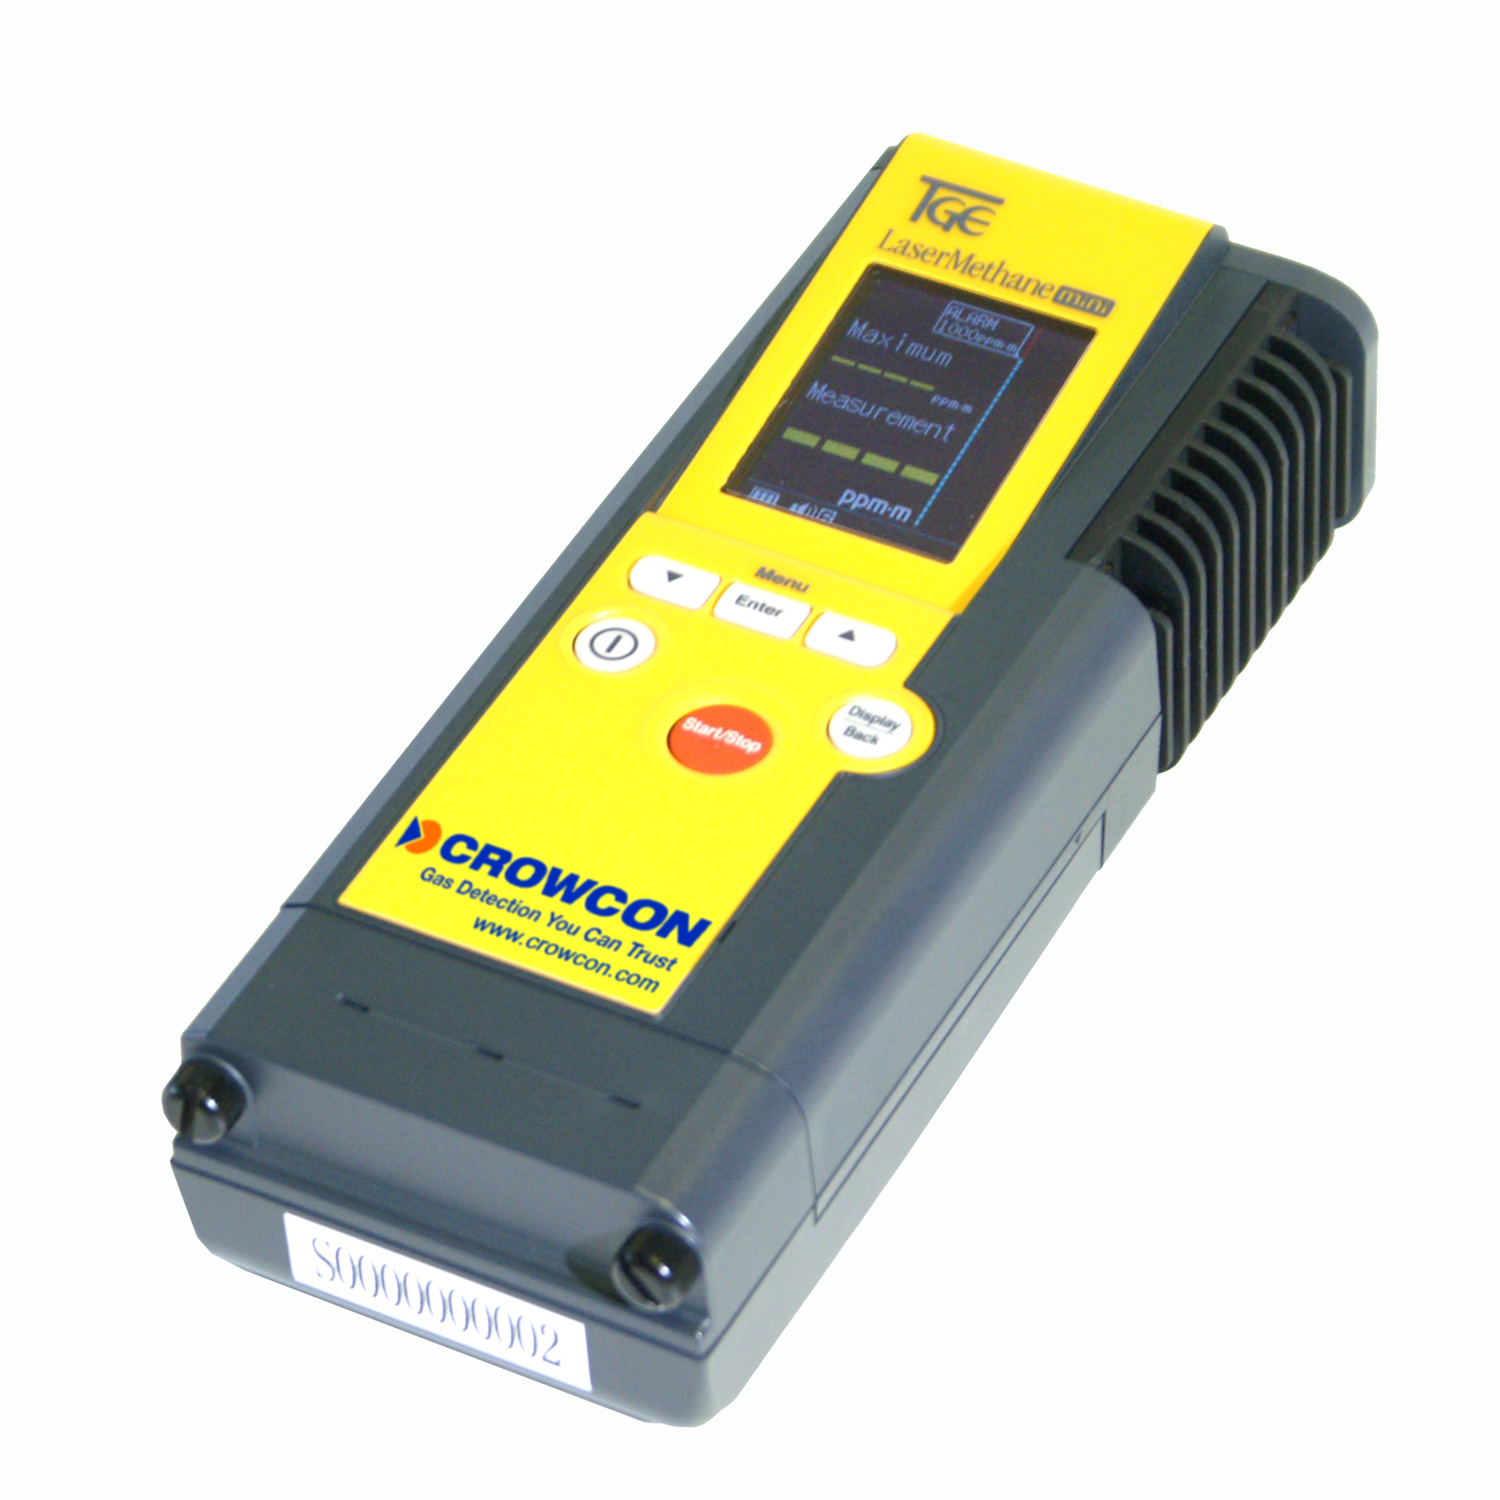 Next Generation Laser Methane Detector With Atex Approval